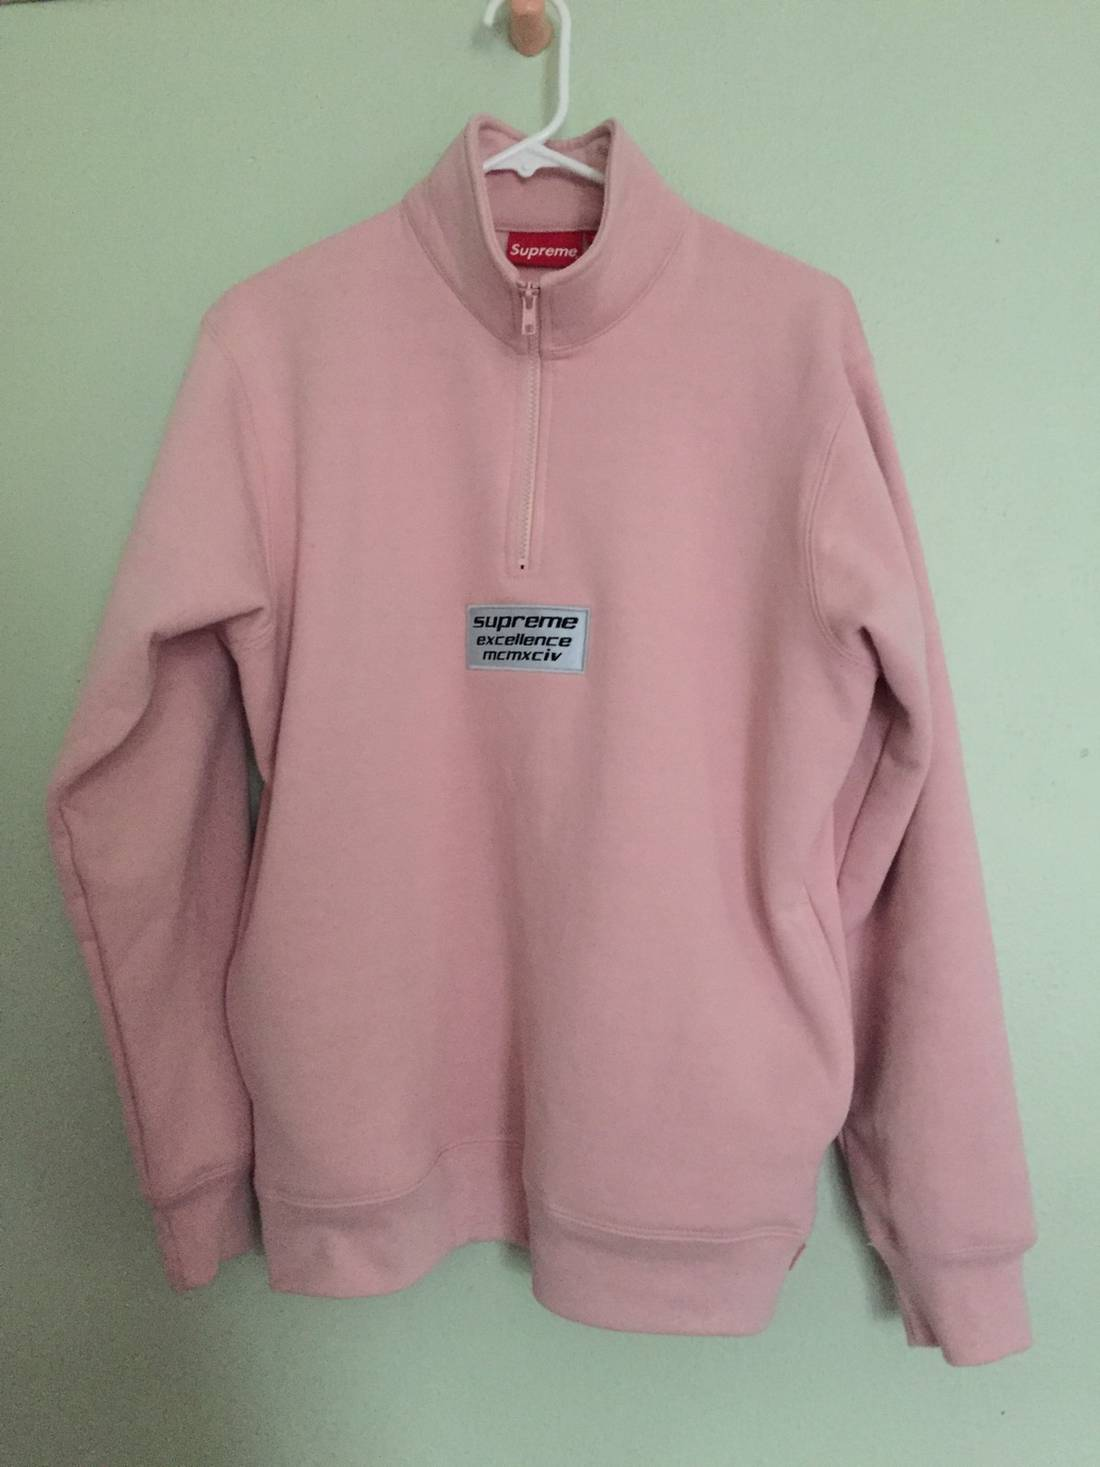 Supreme Supreme Excellence Half Zip Sweater Dusty Pink Size m ...